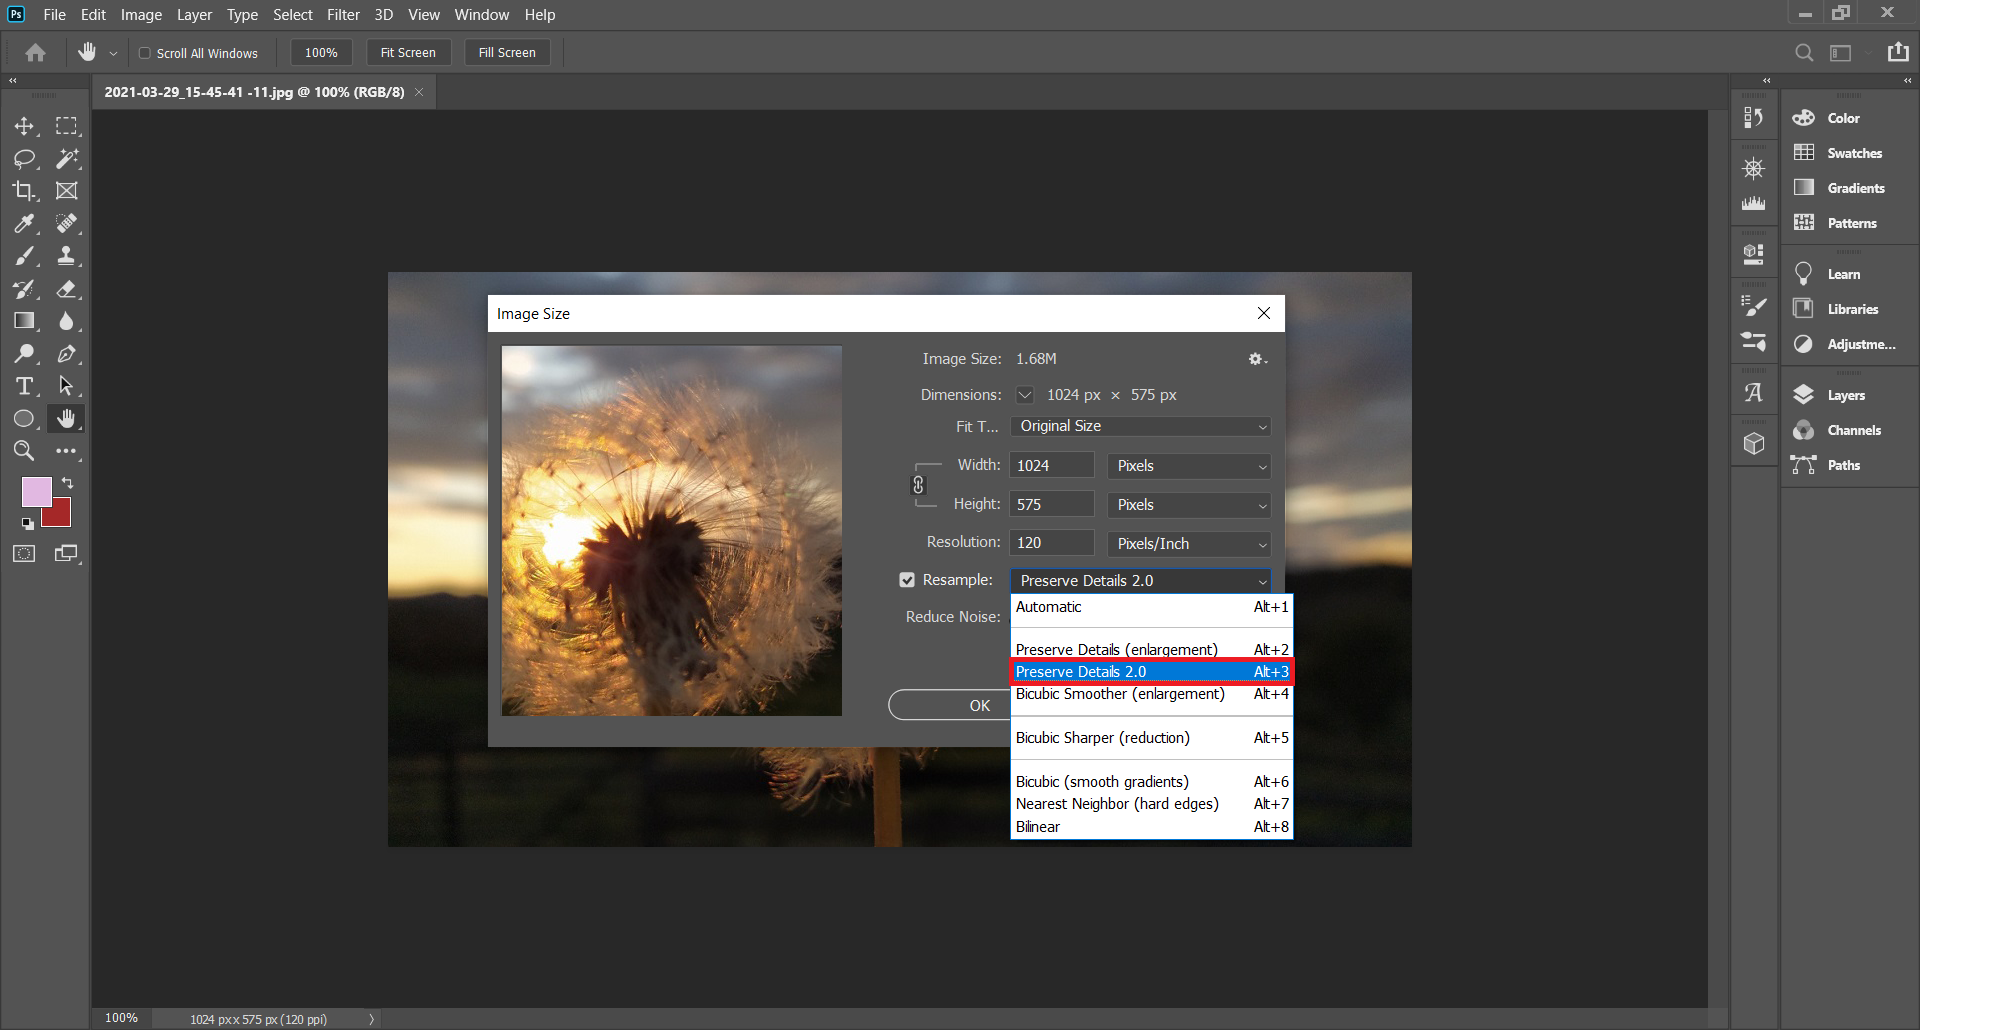 Convert low resolution image to high resolution in Photoshop